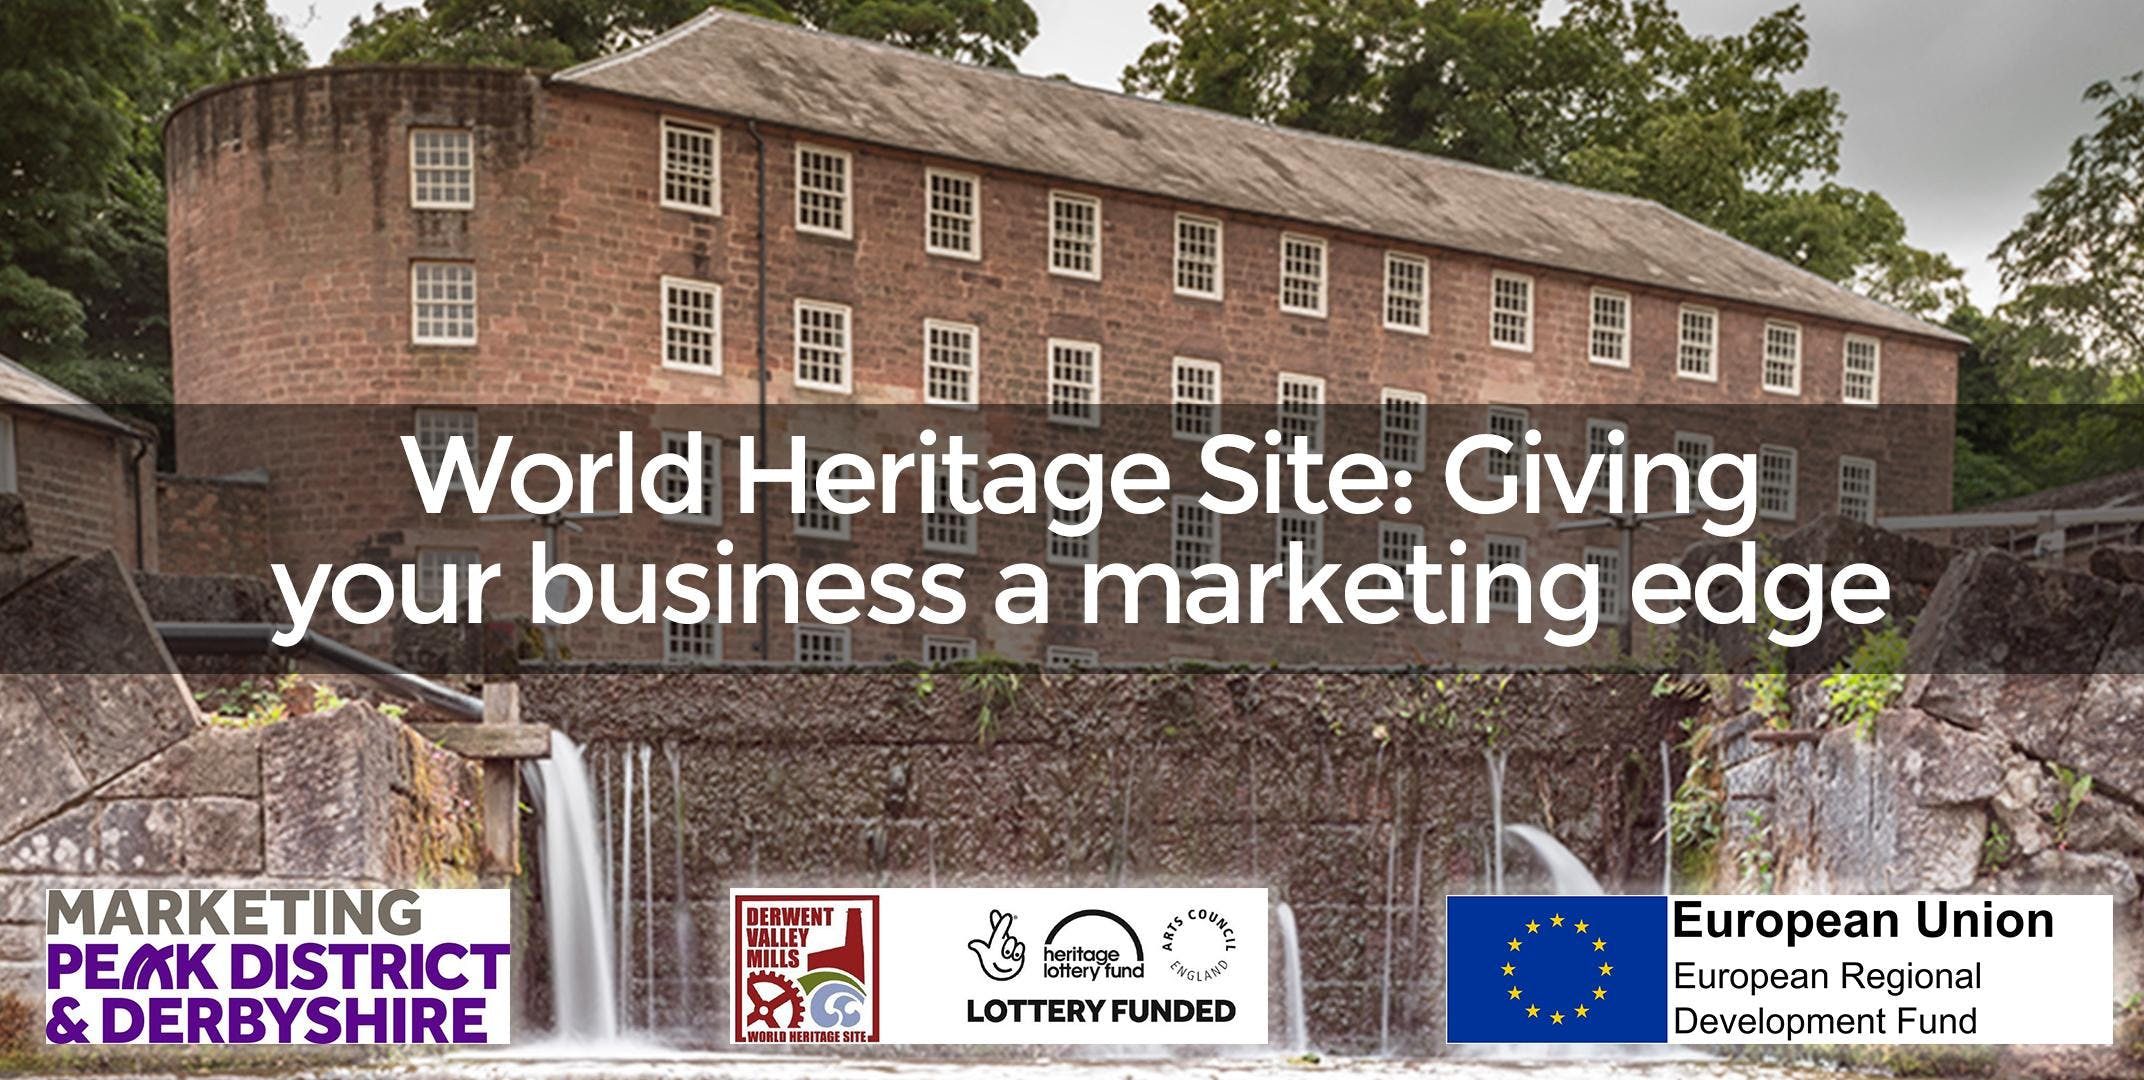 World Heritage Site: Giving your business a marketing edge (Belper)